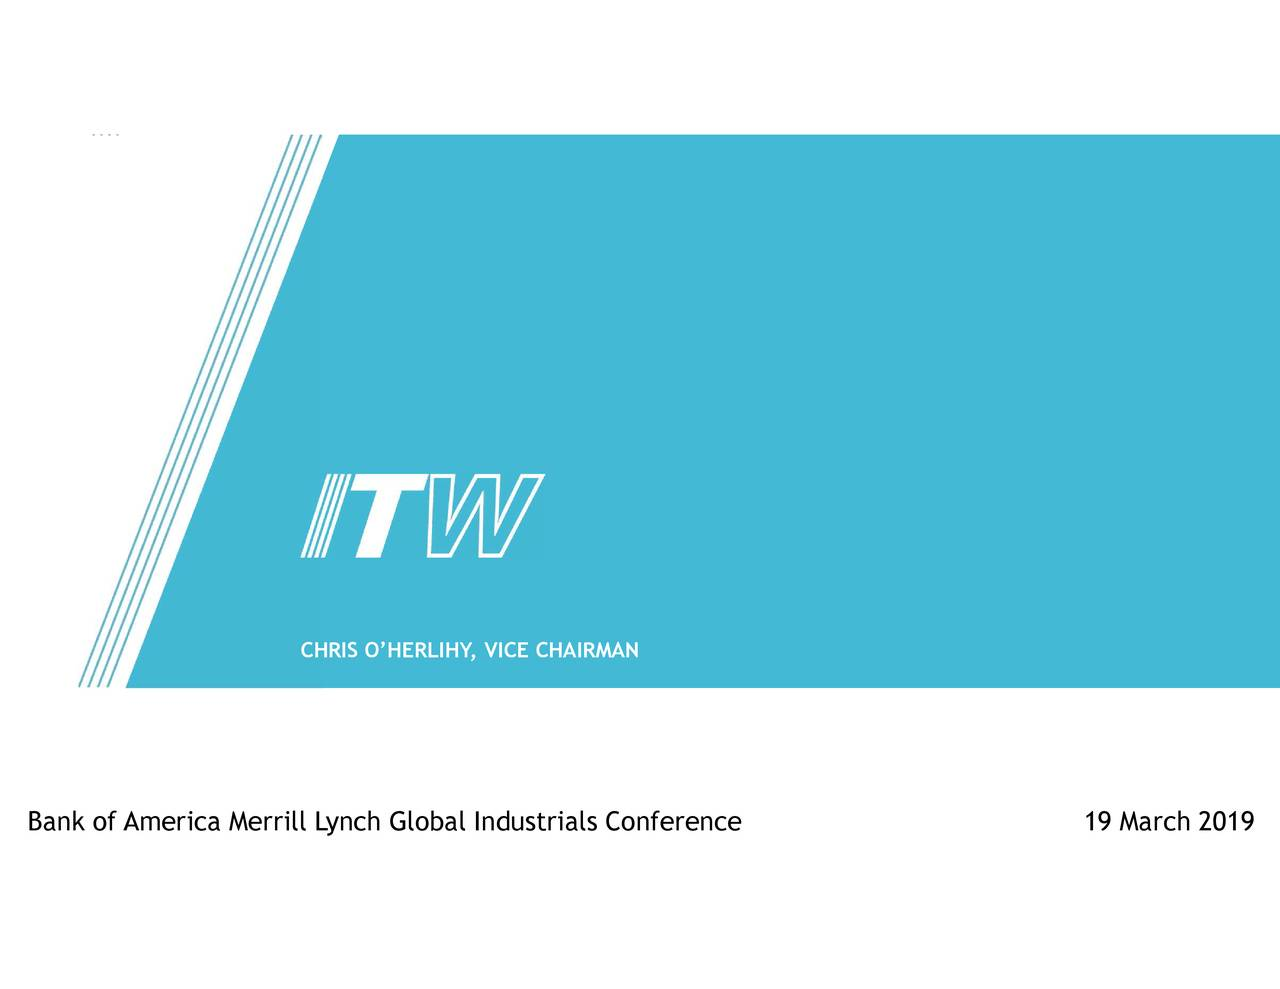 Illinois Tool Works (ITW) Presents At Bank of America Merrill Lynch Global Industrials Conference - Slideshow